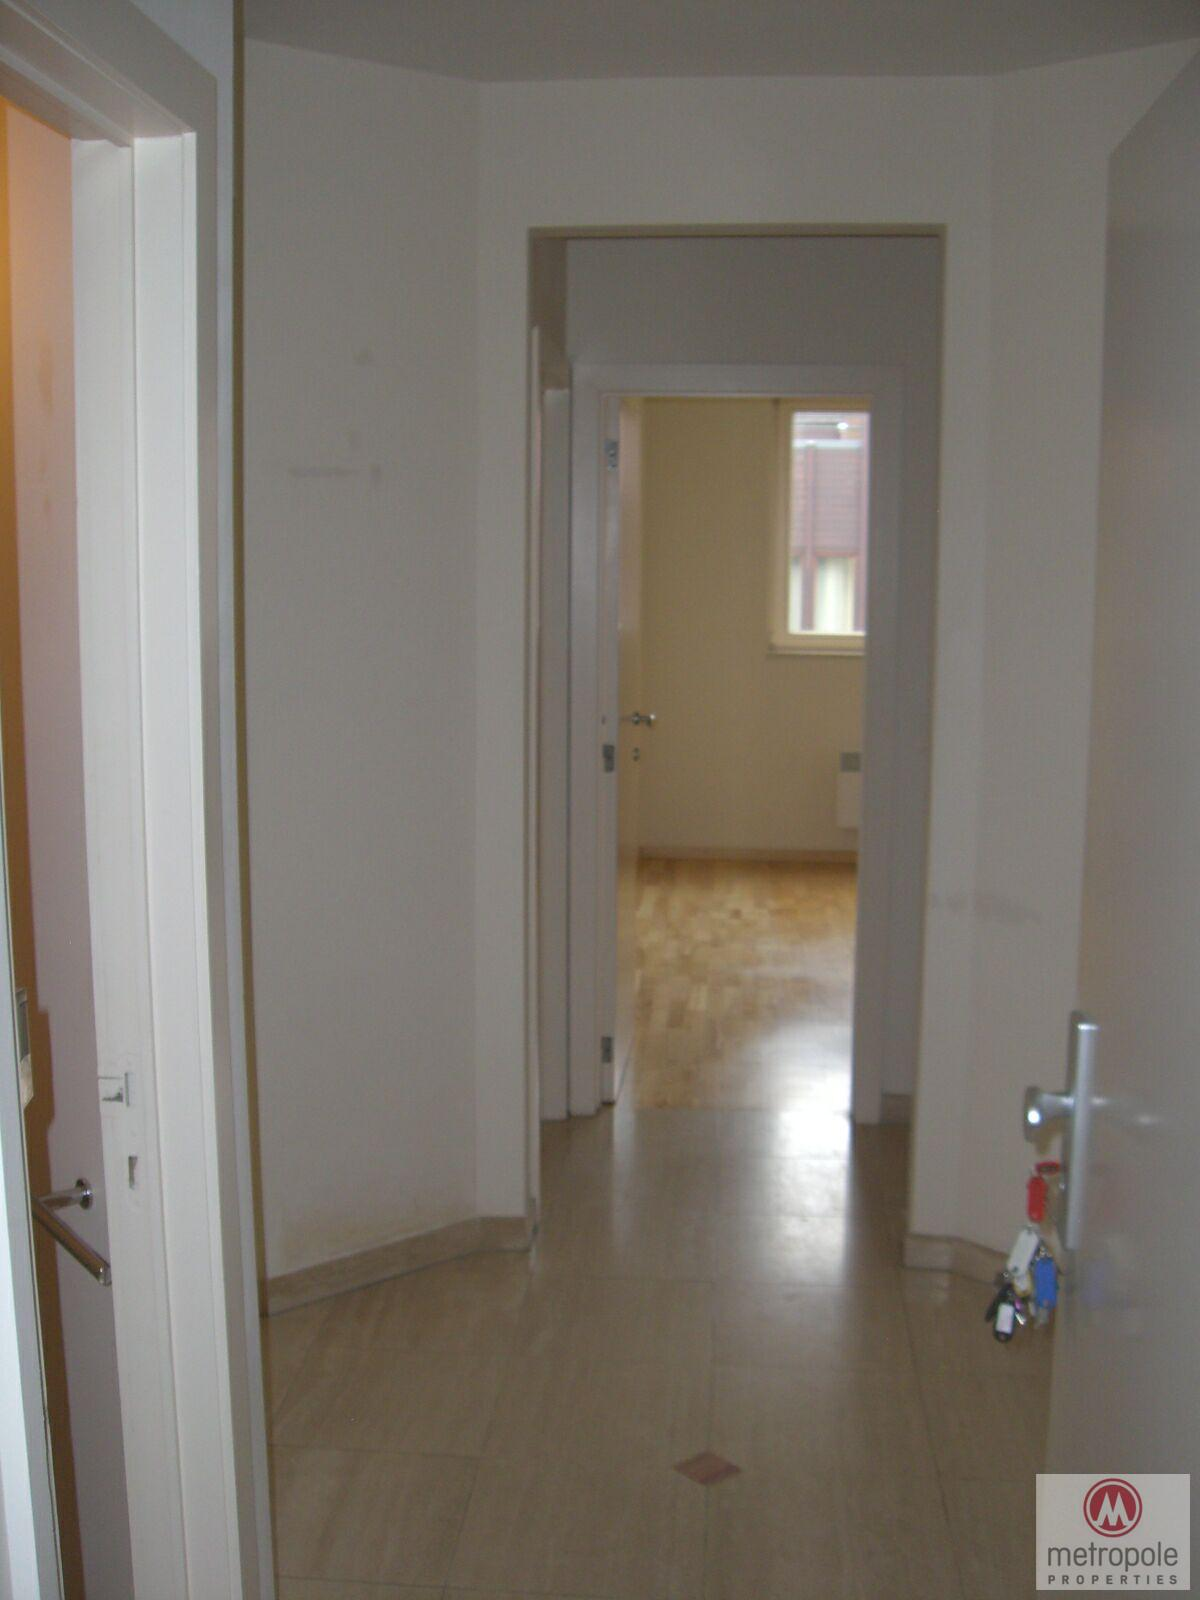 photo_'KONKEL _ APPARTEMENT 3 CHAMBRES _ CONSTRUCTION RECENTE